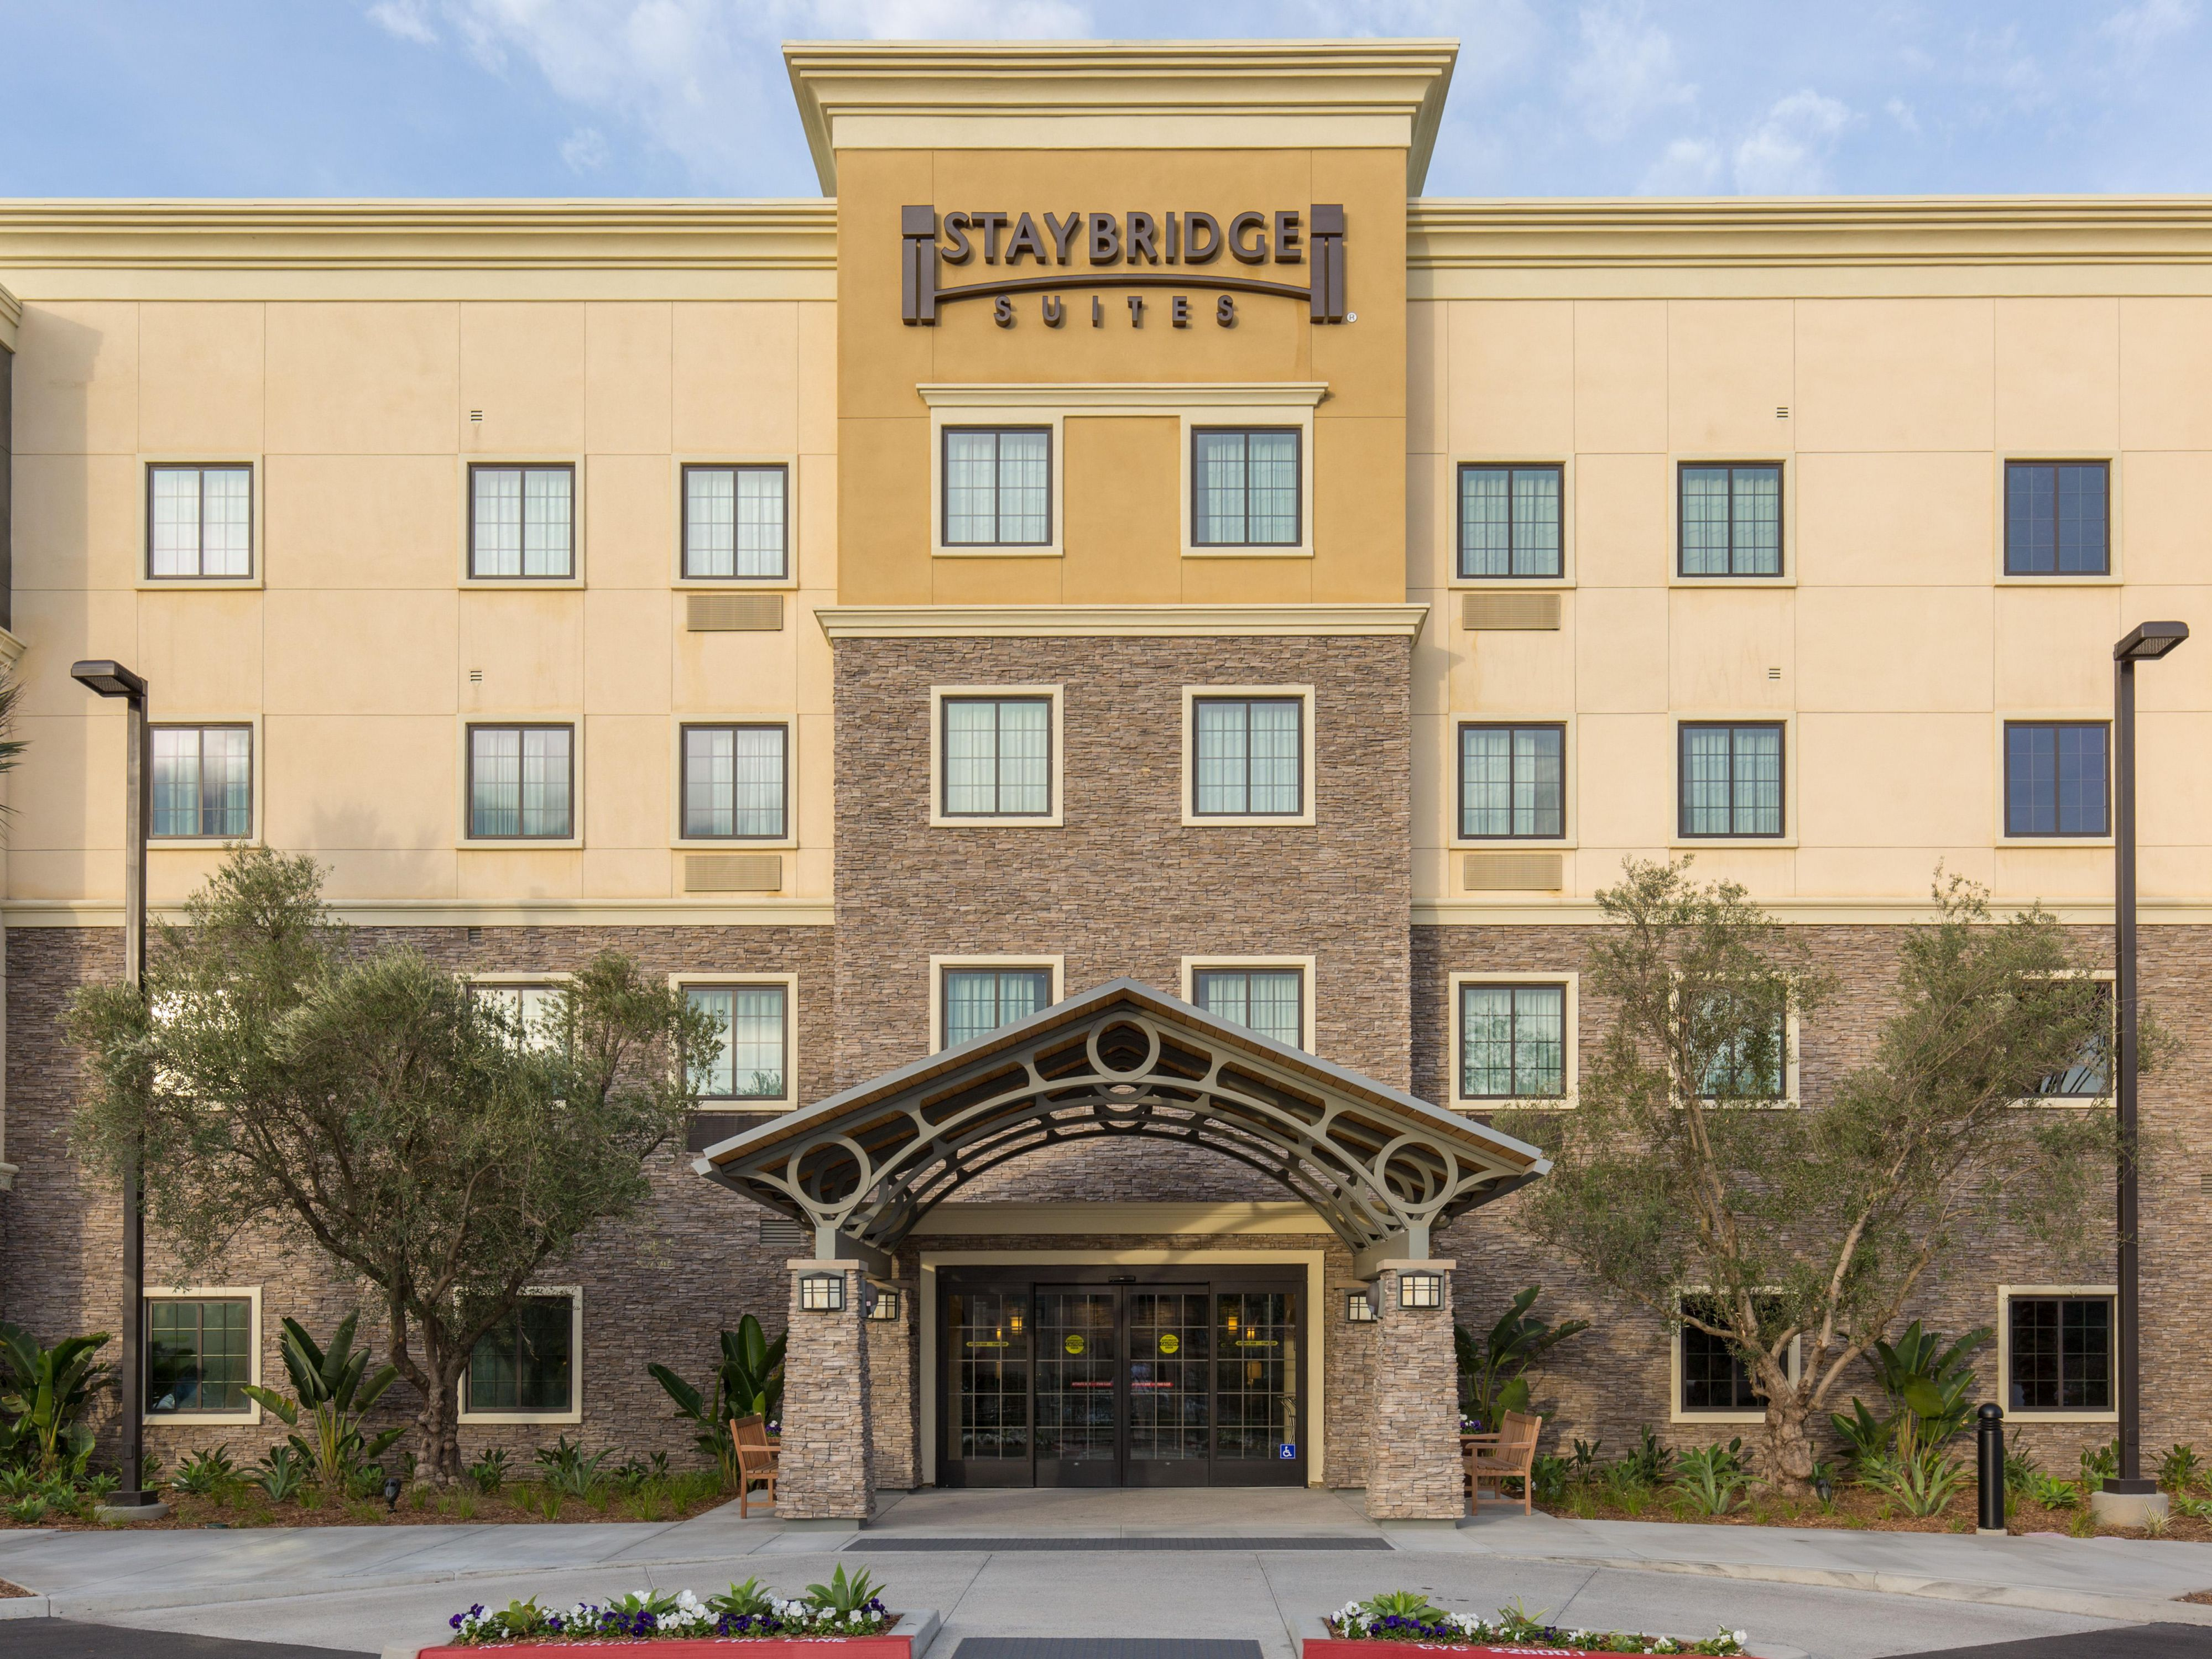 Corona Hotels Staybridge Suites South Extended Stay Hotel In United States